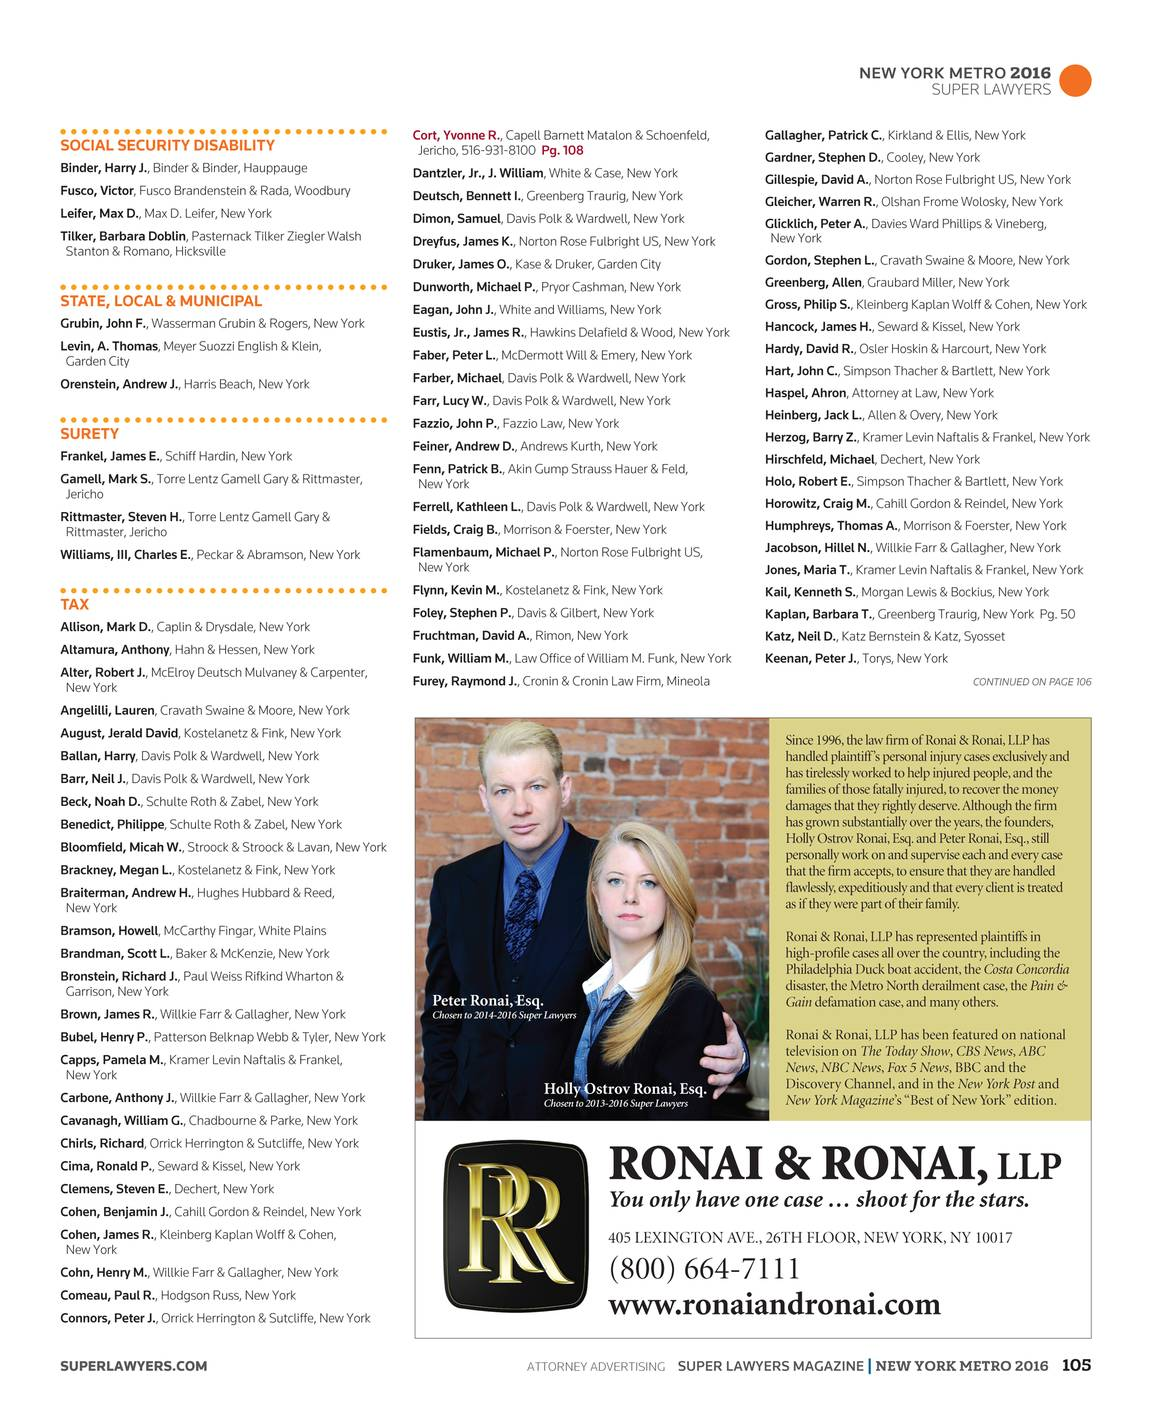 Super Lawyers - New York Metro 2016 - page 104